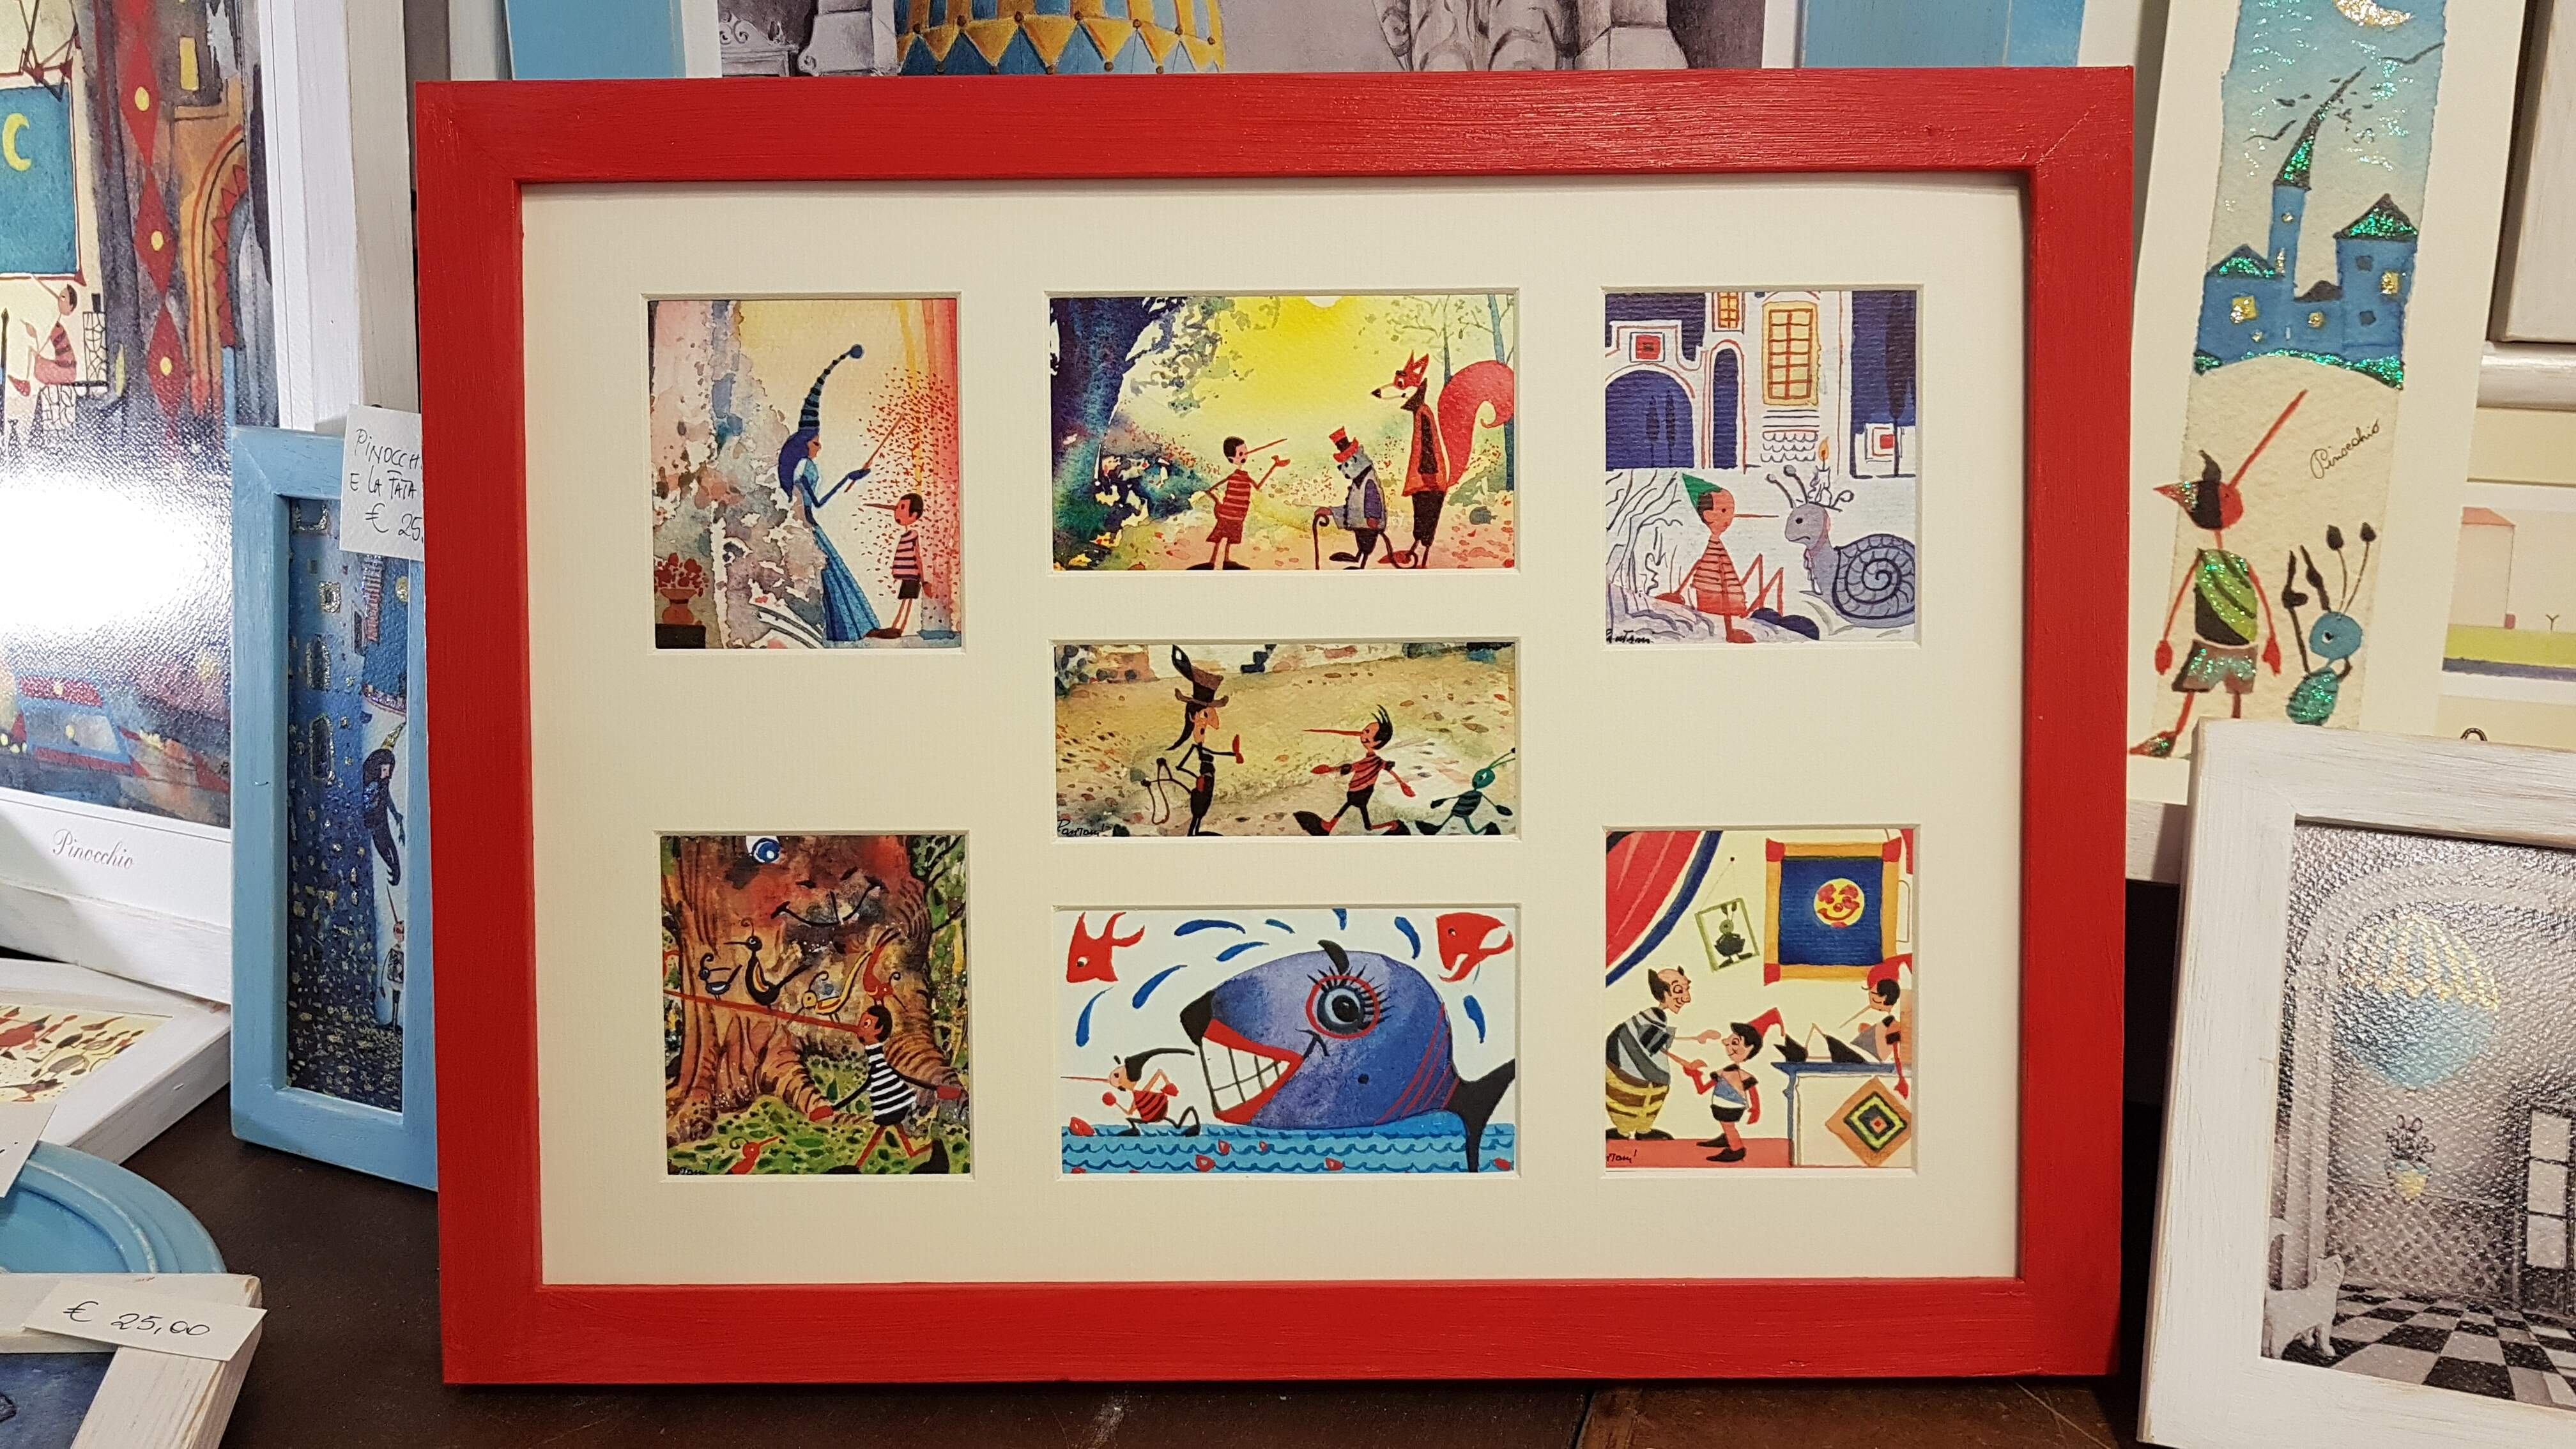 La storia di Pinocchio con cornice - The story of Pinocchio with frame